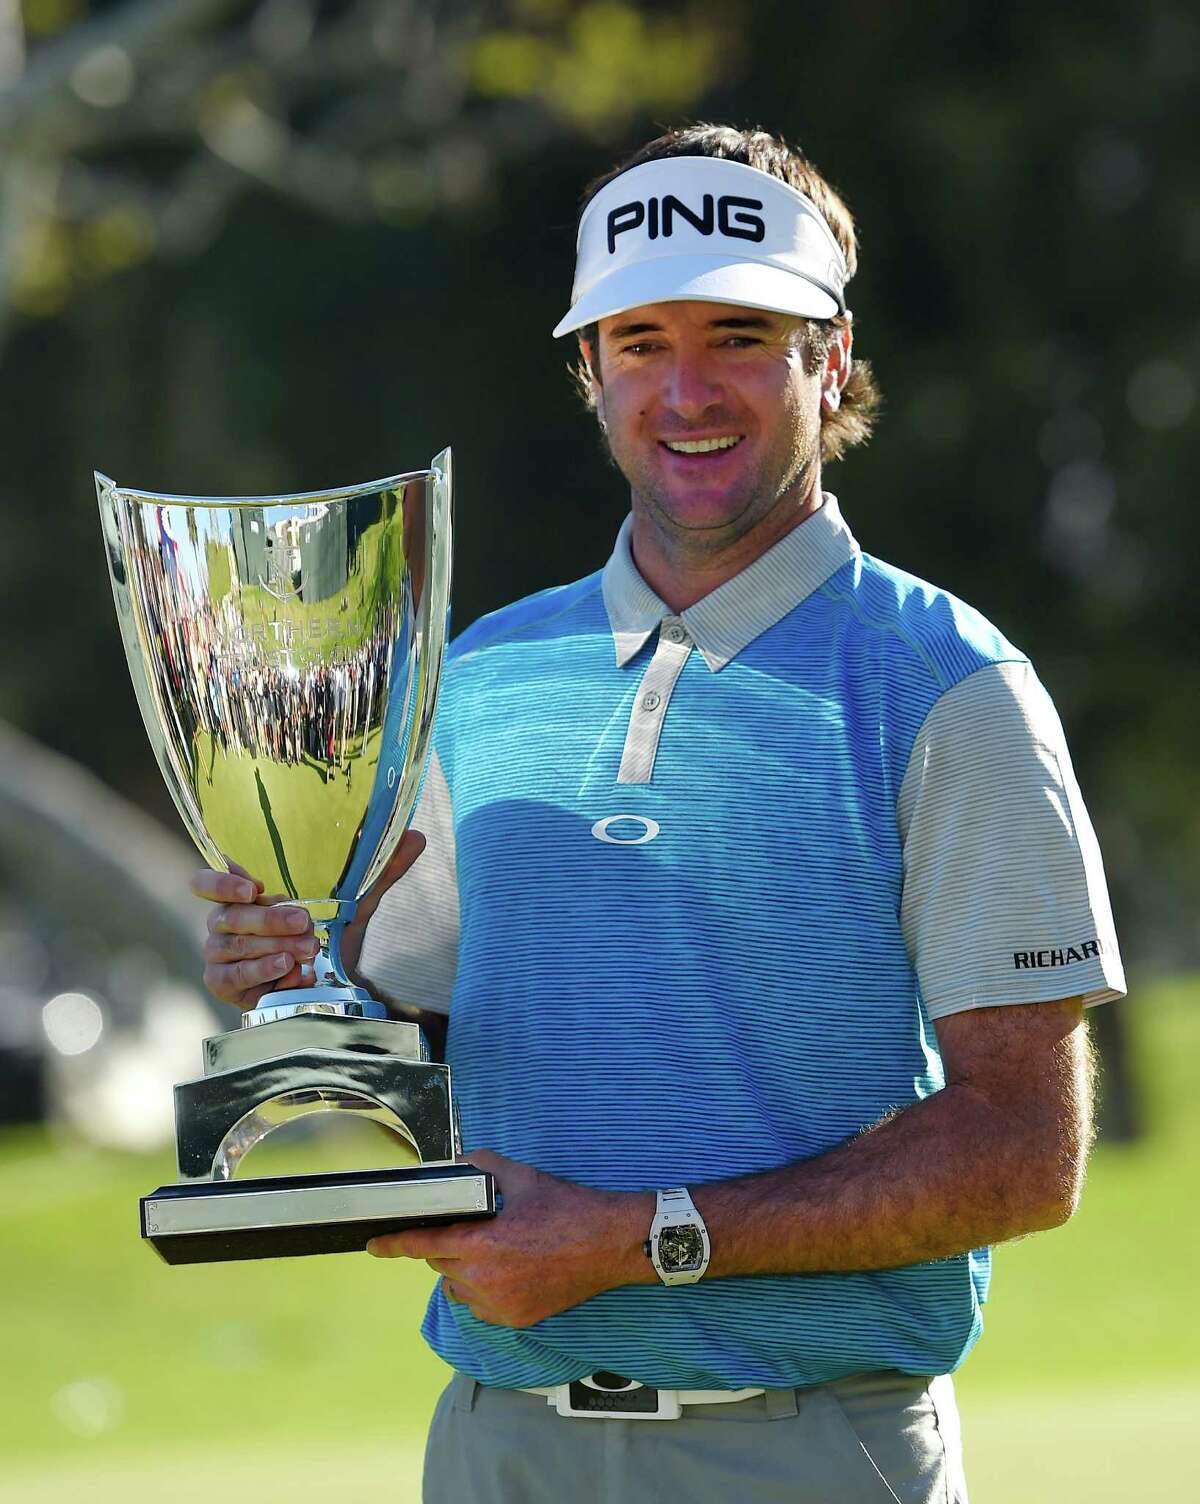 Bubba Watson Probably the most famous American athlete to embrace his bubba is golfer and Masters champion Watson.Bubba is a chiefly Southern nickname meaning brother.